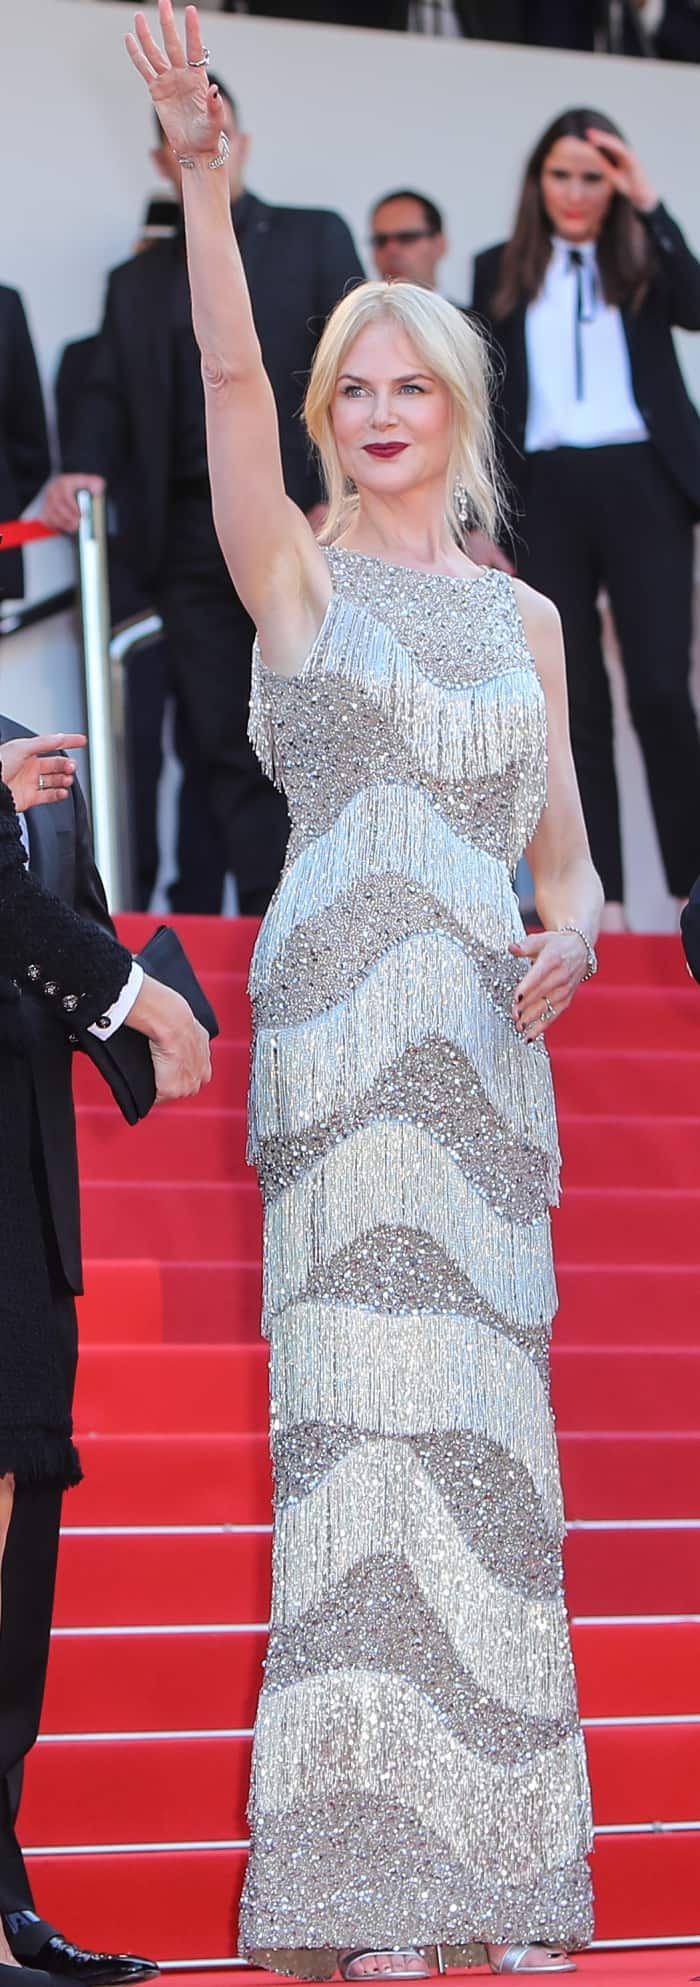 """Nicole Kidman wearing a Michael Kors Collection gown and Gianvito Rossi """"Portofino"""" sandals at """"The Beguiled"""" premiere during the 70th annual Cannes Film Festival"""